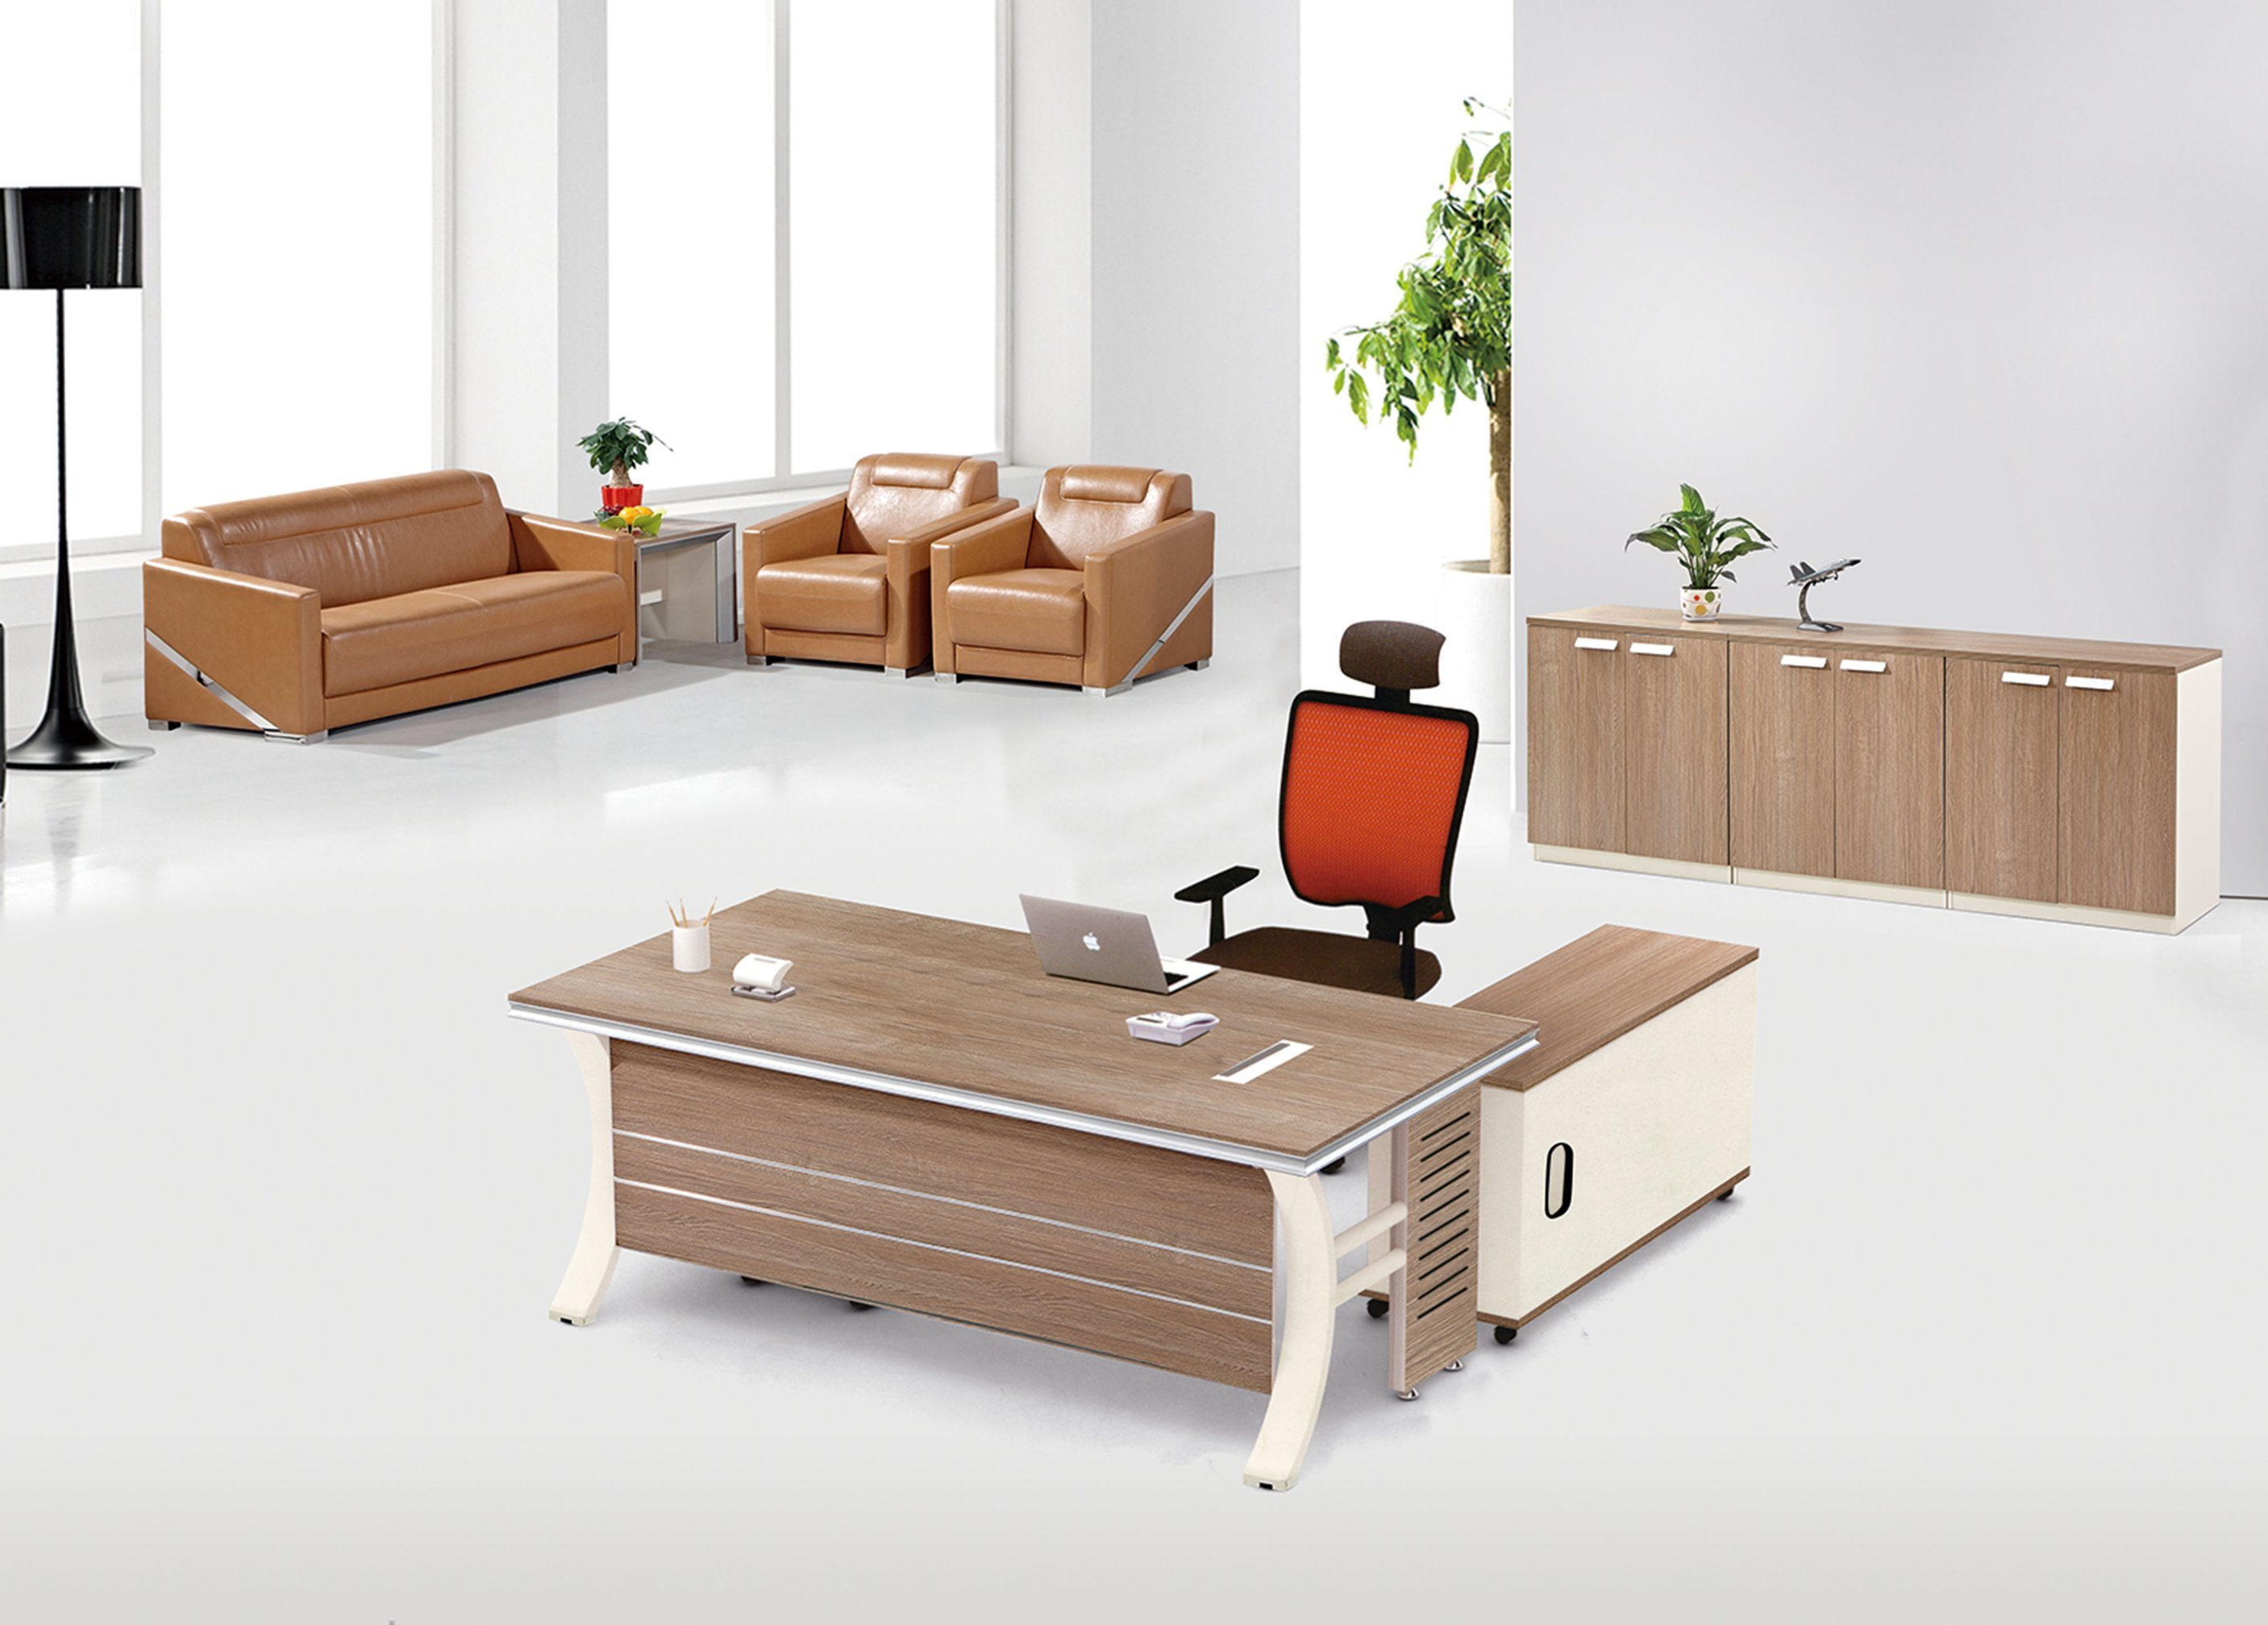 China Modern Wooden Durable Metal Executive Melamine Manager Desk Office Table Staff